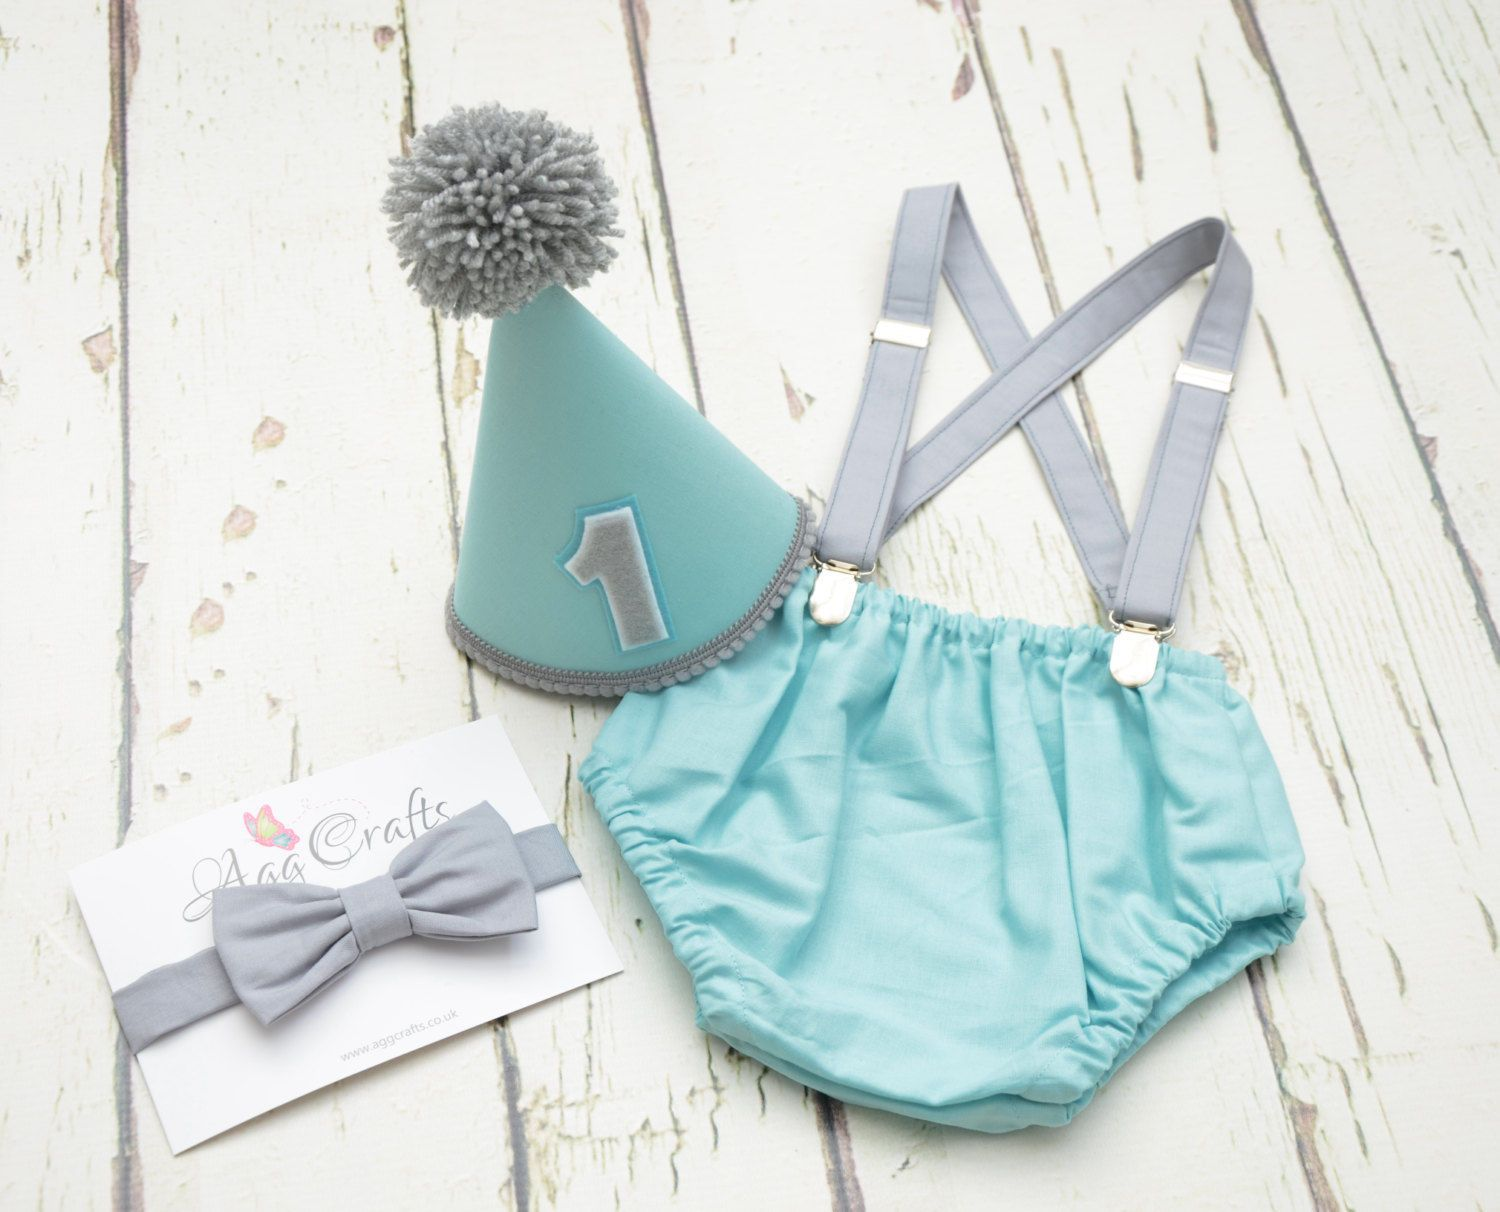 3b8e370d0 Aqua and Grey Baby Boys First Birthday Cake Smash Party outfit | Outfits &  Sets | Boys' Clothing (0-24 Months) - Zeppy.io